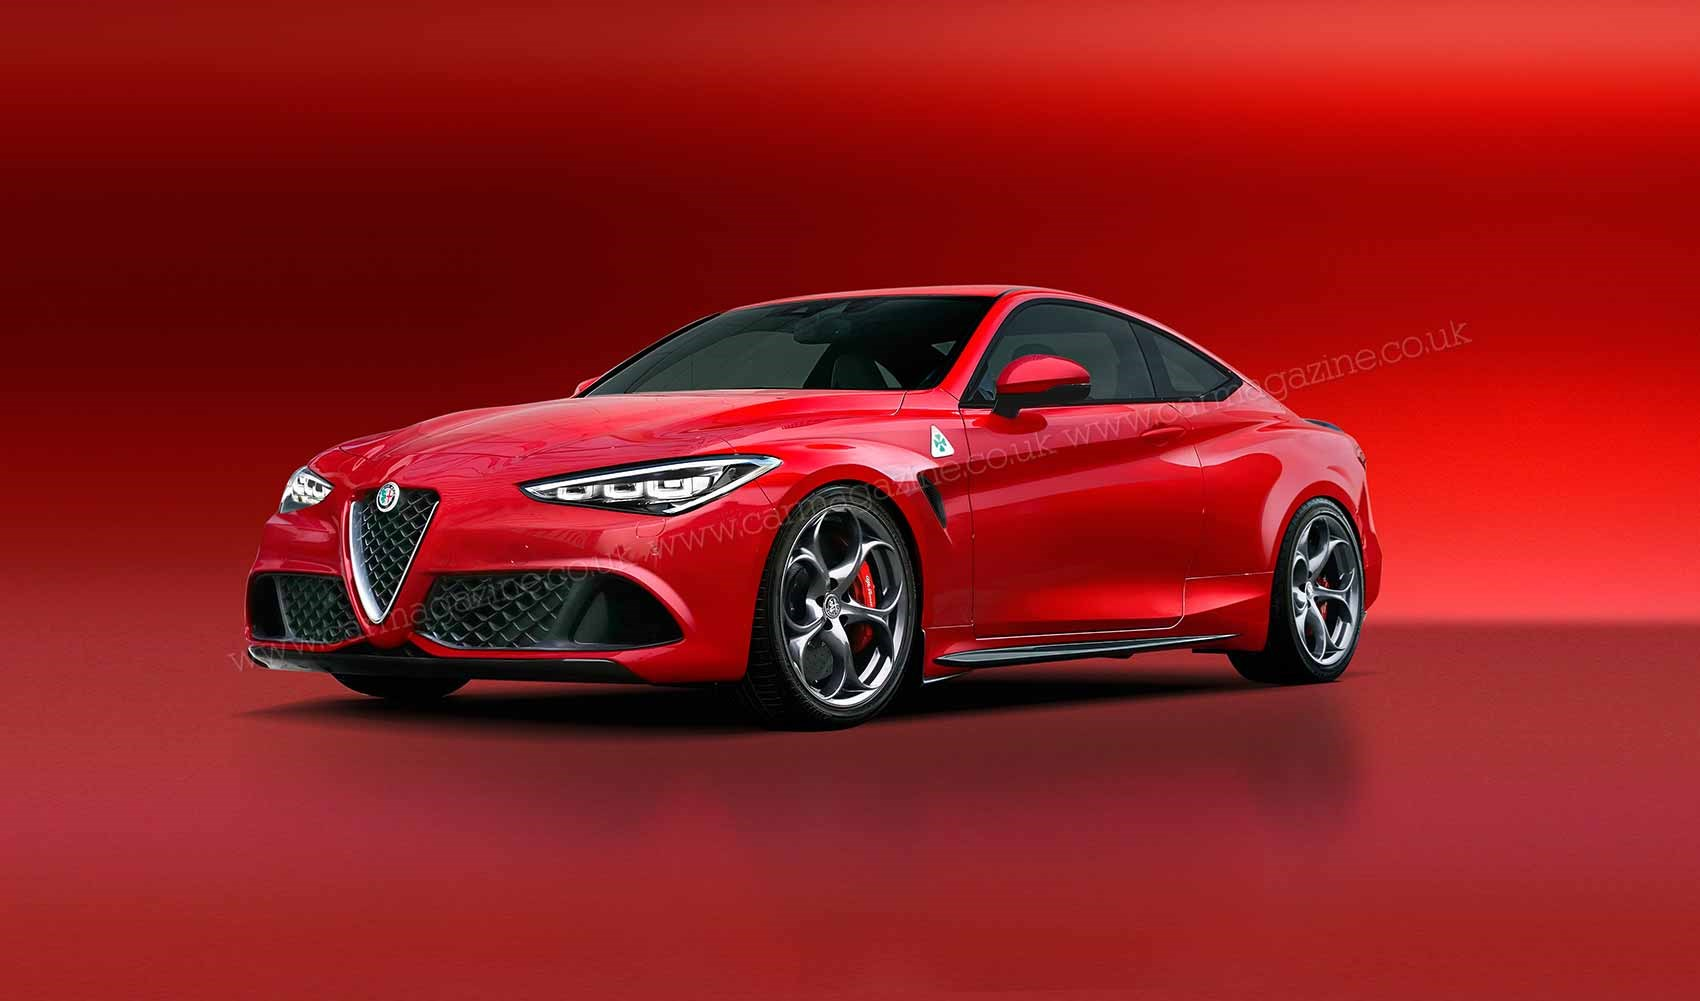 new alfa romeo gtv could be shown at geneva | car magazine